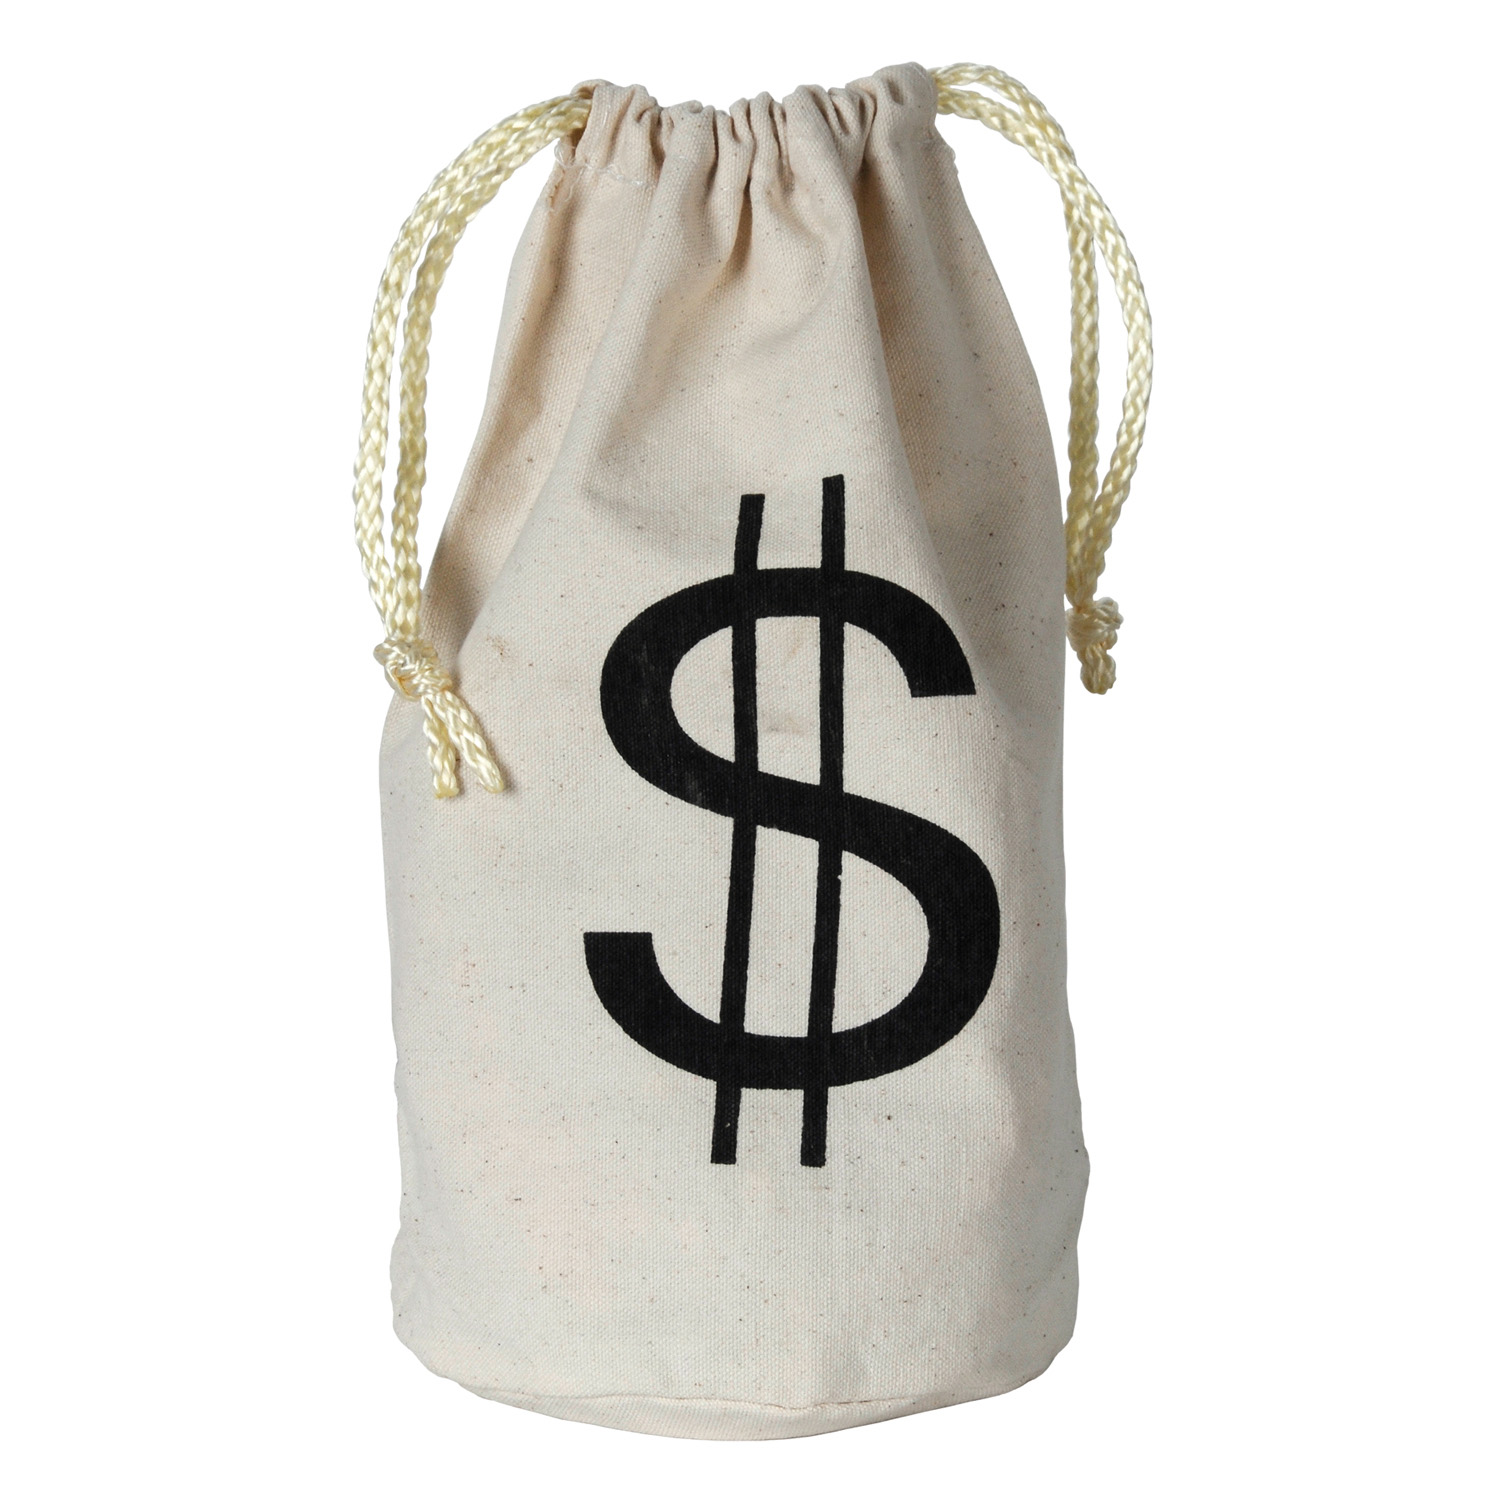 """$"" Bag (Pack of 12) $, bag, money, canvas, casino, wild, west, theme, cowboy, poker, gambling, chips, cards, Las Vegas, party, night, event, costume, prize, favor"